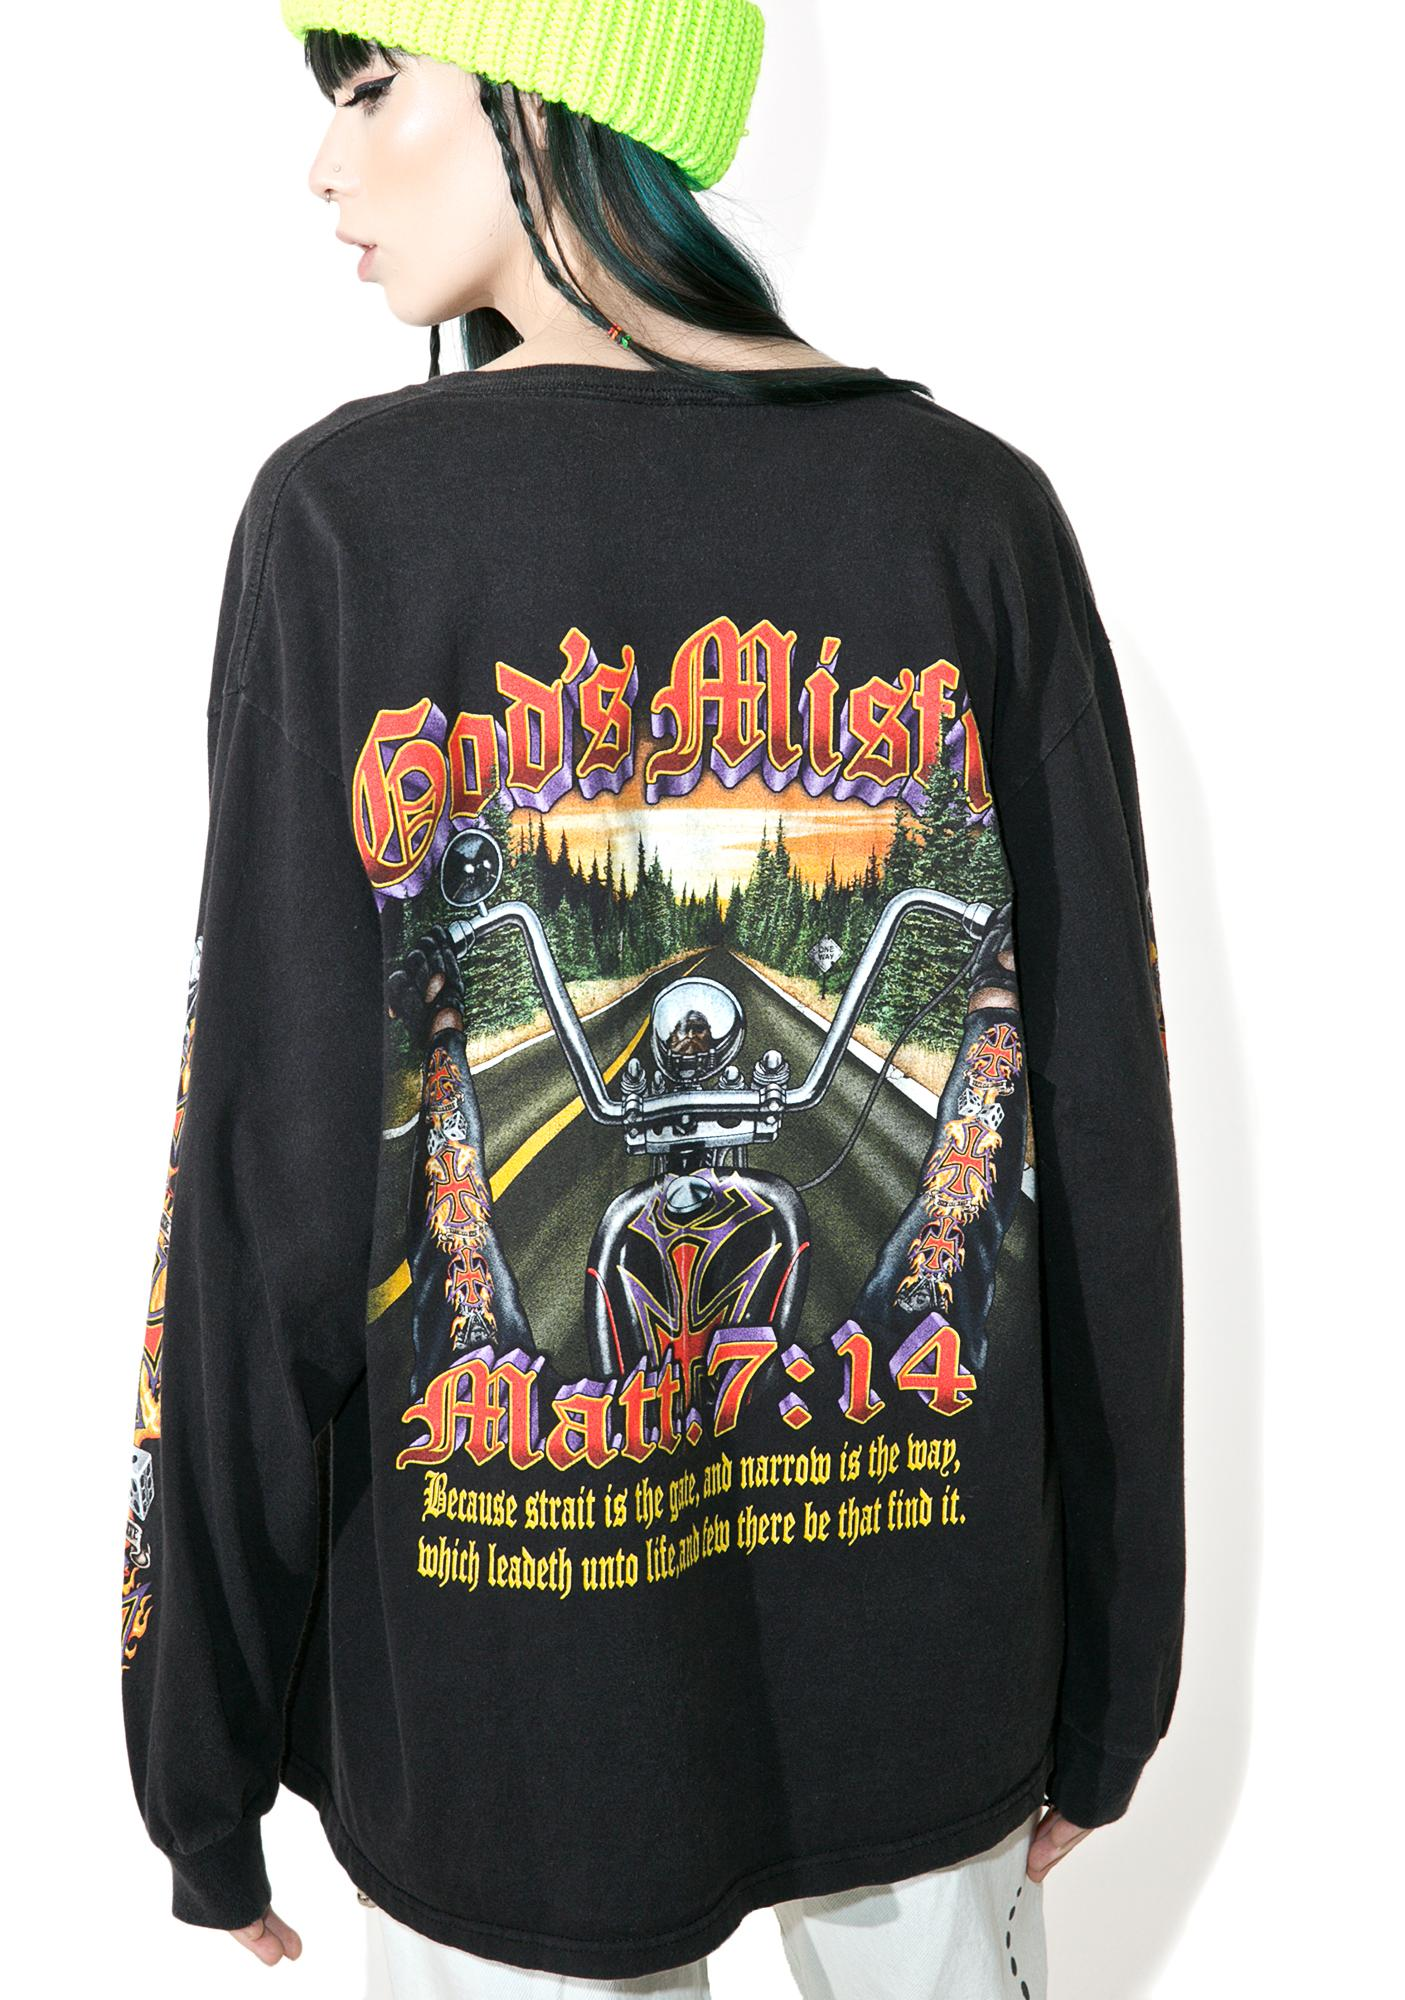 Vintage God's Misfits Biker Gang Long Sleeve Tee